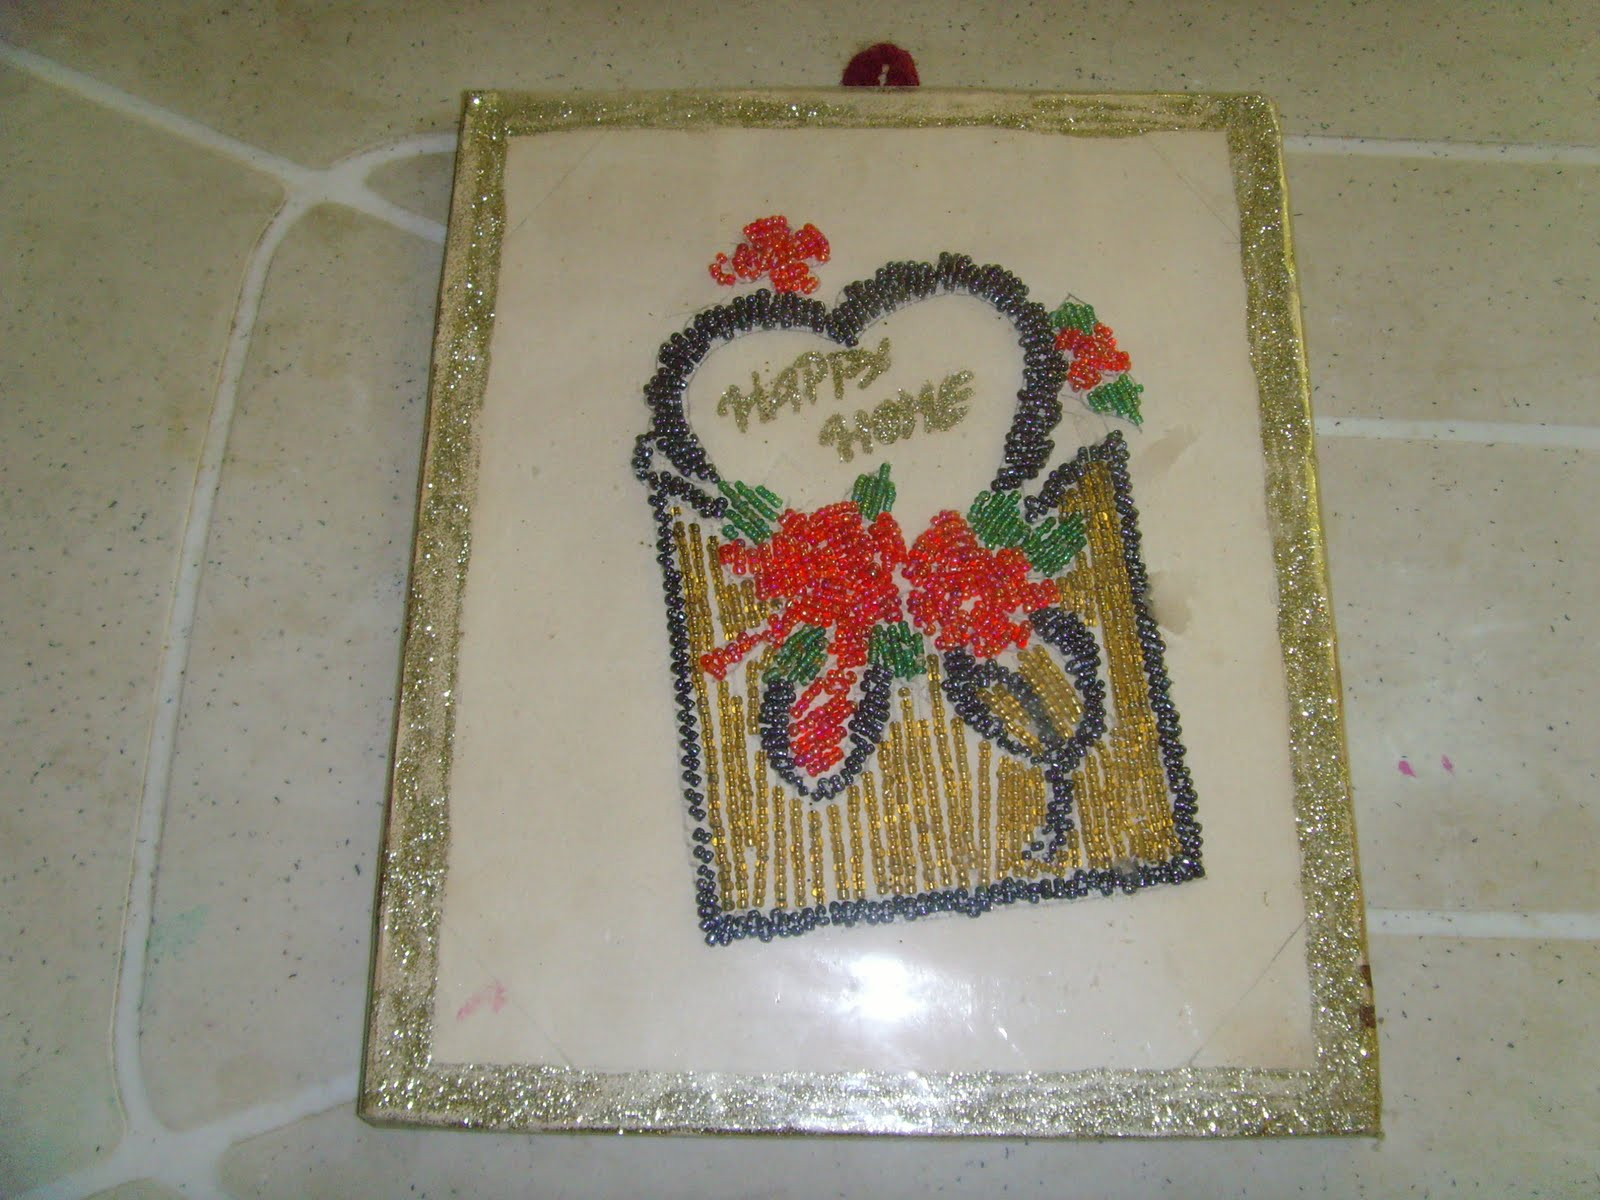 craft works: beads work(wall hanging)